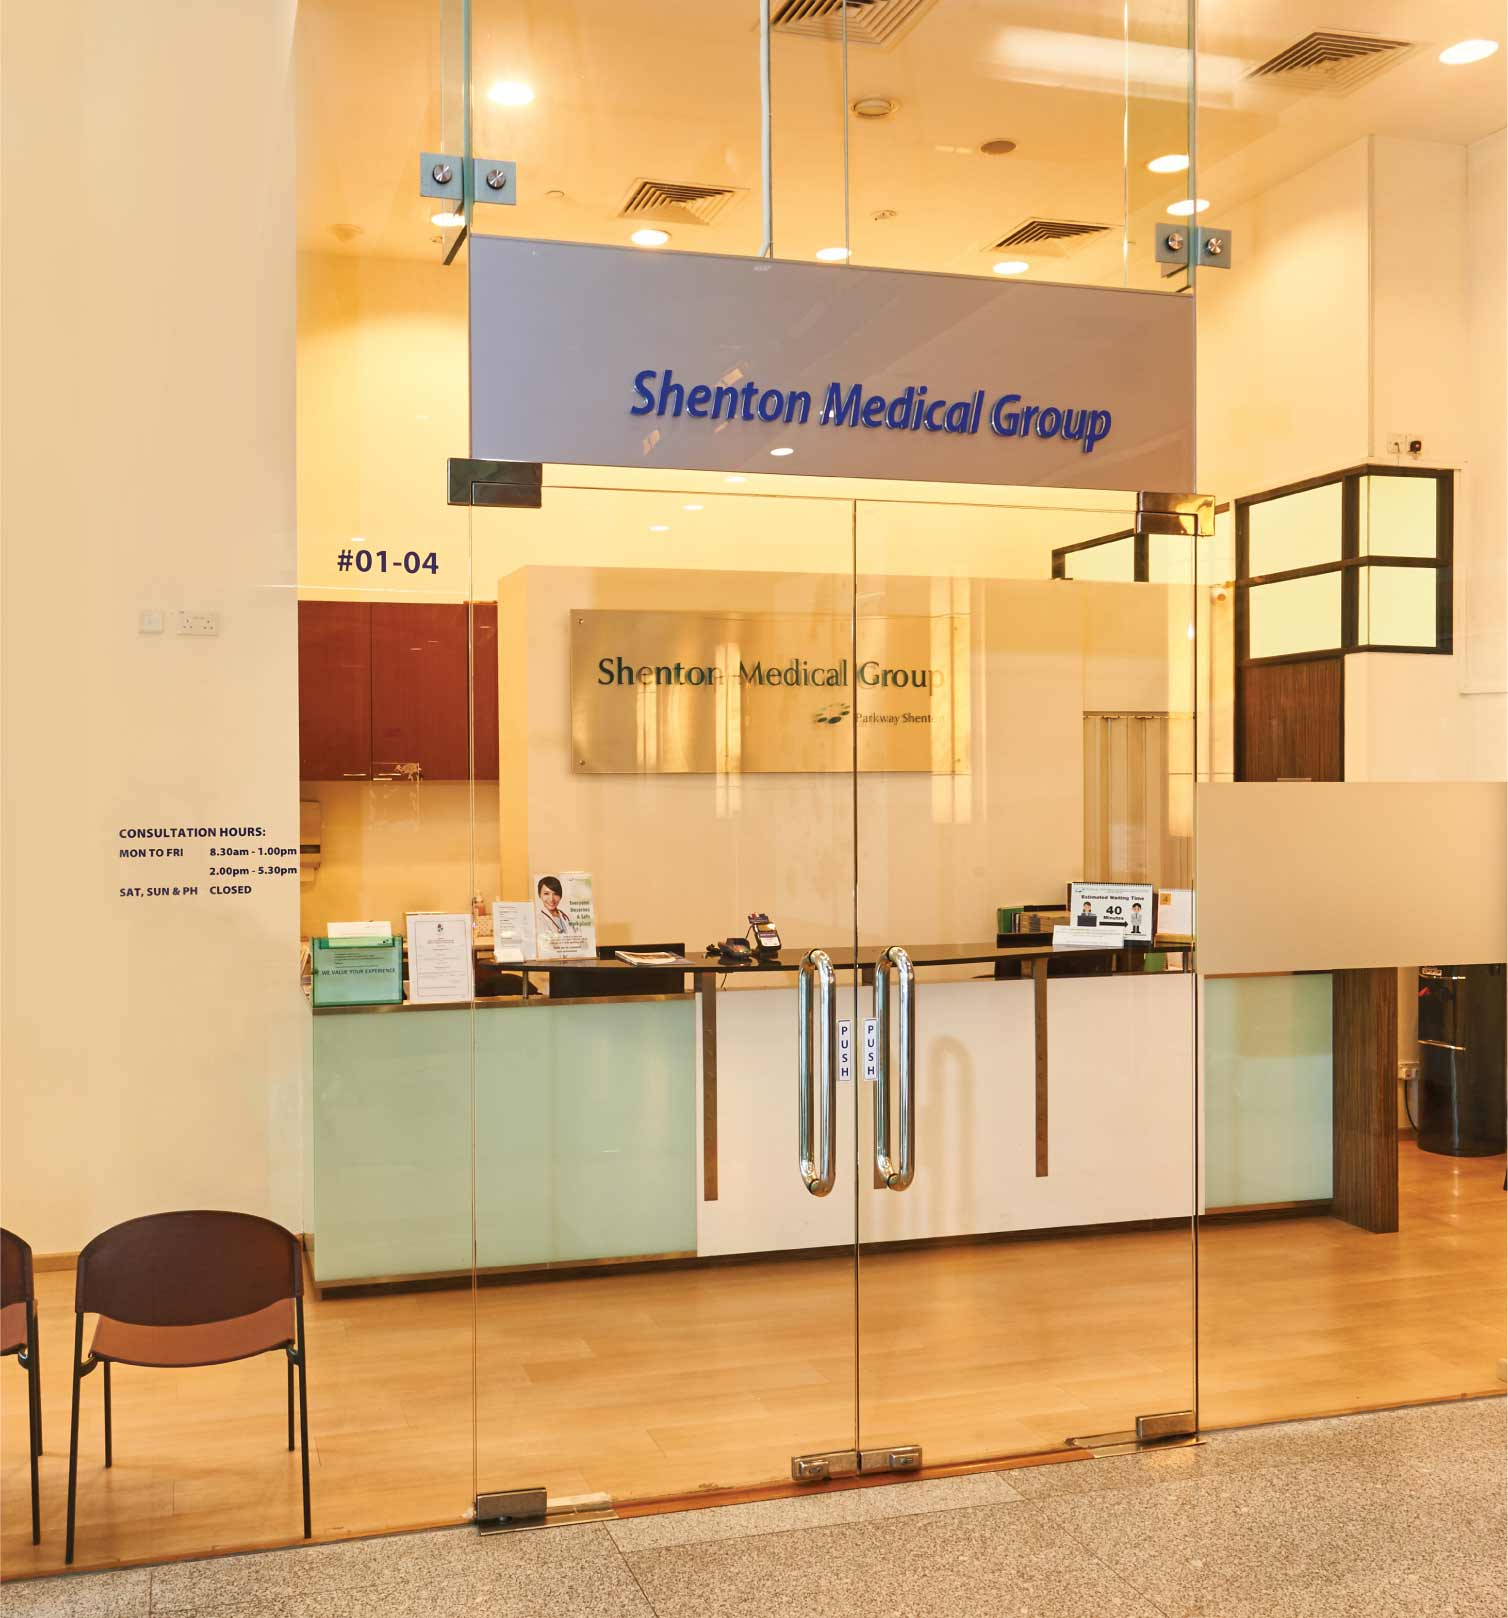 Harbourfront Tower One - Shenton Medical Group